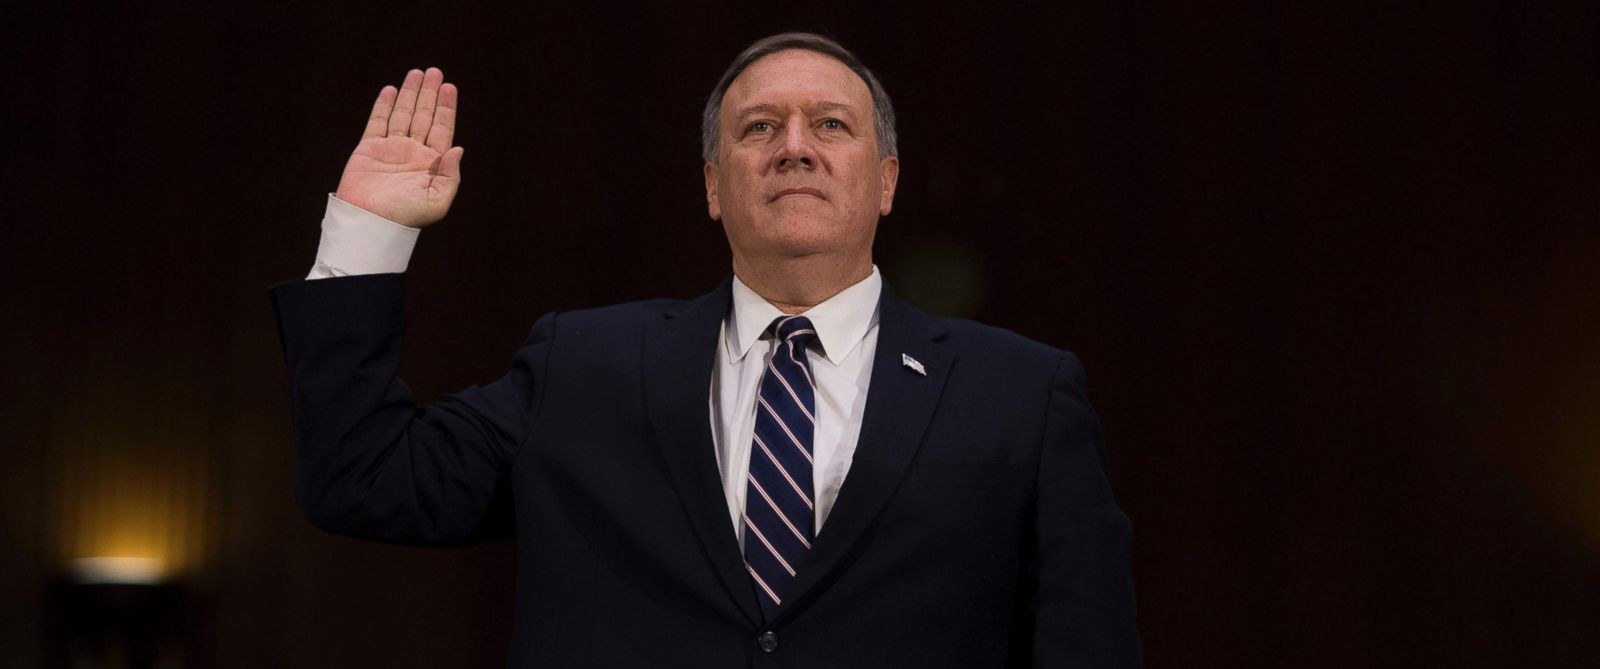 PHOTO: US Congressman Mike Pompeo, R-Kansas, is sworn in before testifying before the Senate (Select) Intelligence Committee on Capitol Hill in Washington, Jan. 12, 2017, on his nomination to be director of the Central Intelligence Agency (CIA).